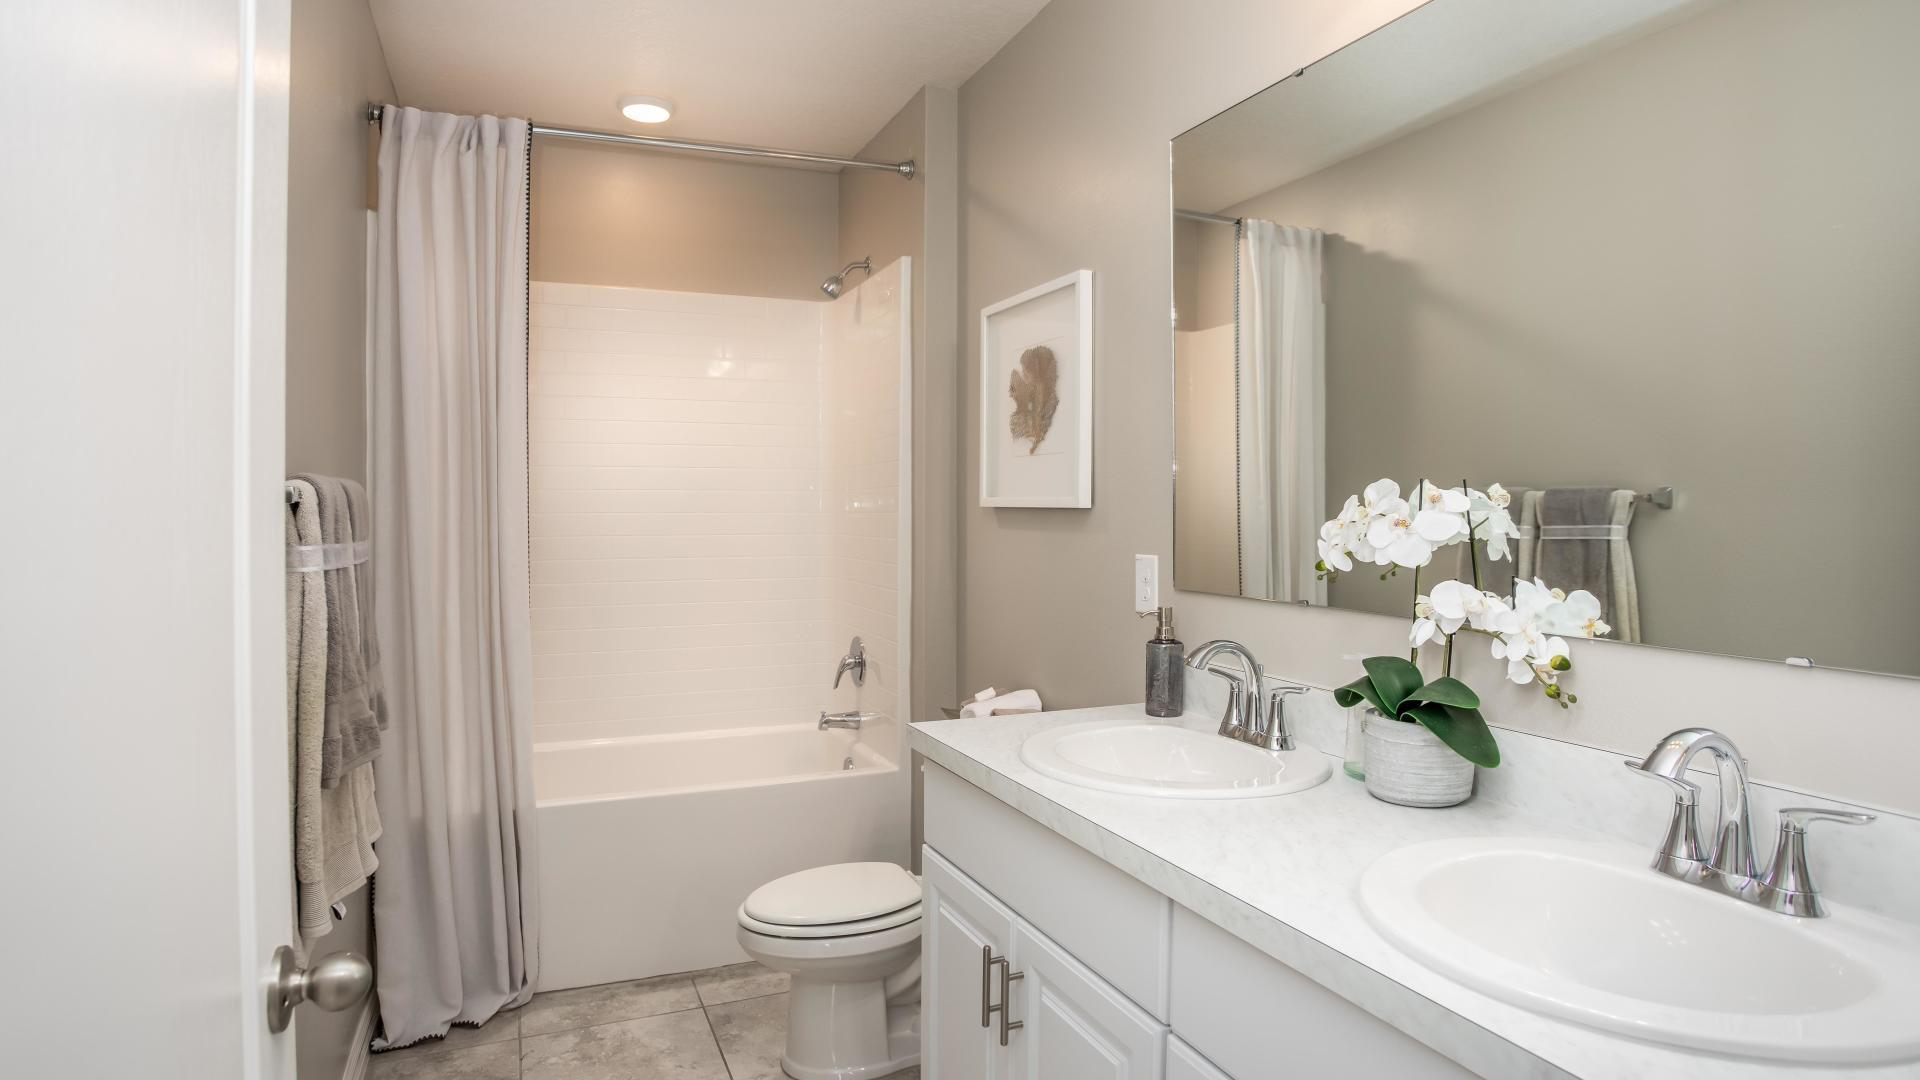 Bathroom featured in the Mesquite By Maronda Homes in Daytona Beach, FL